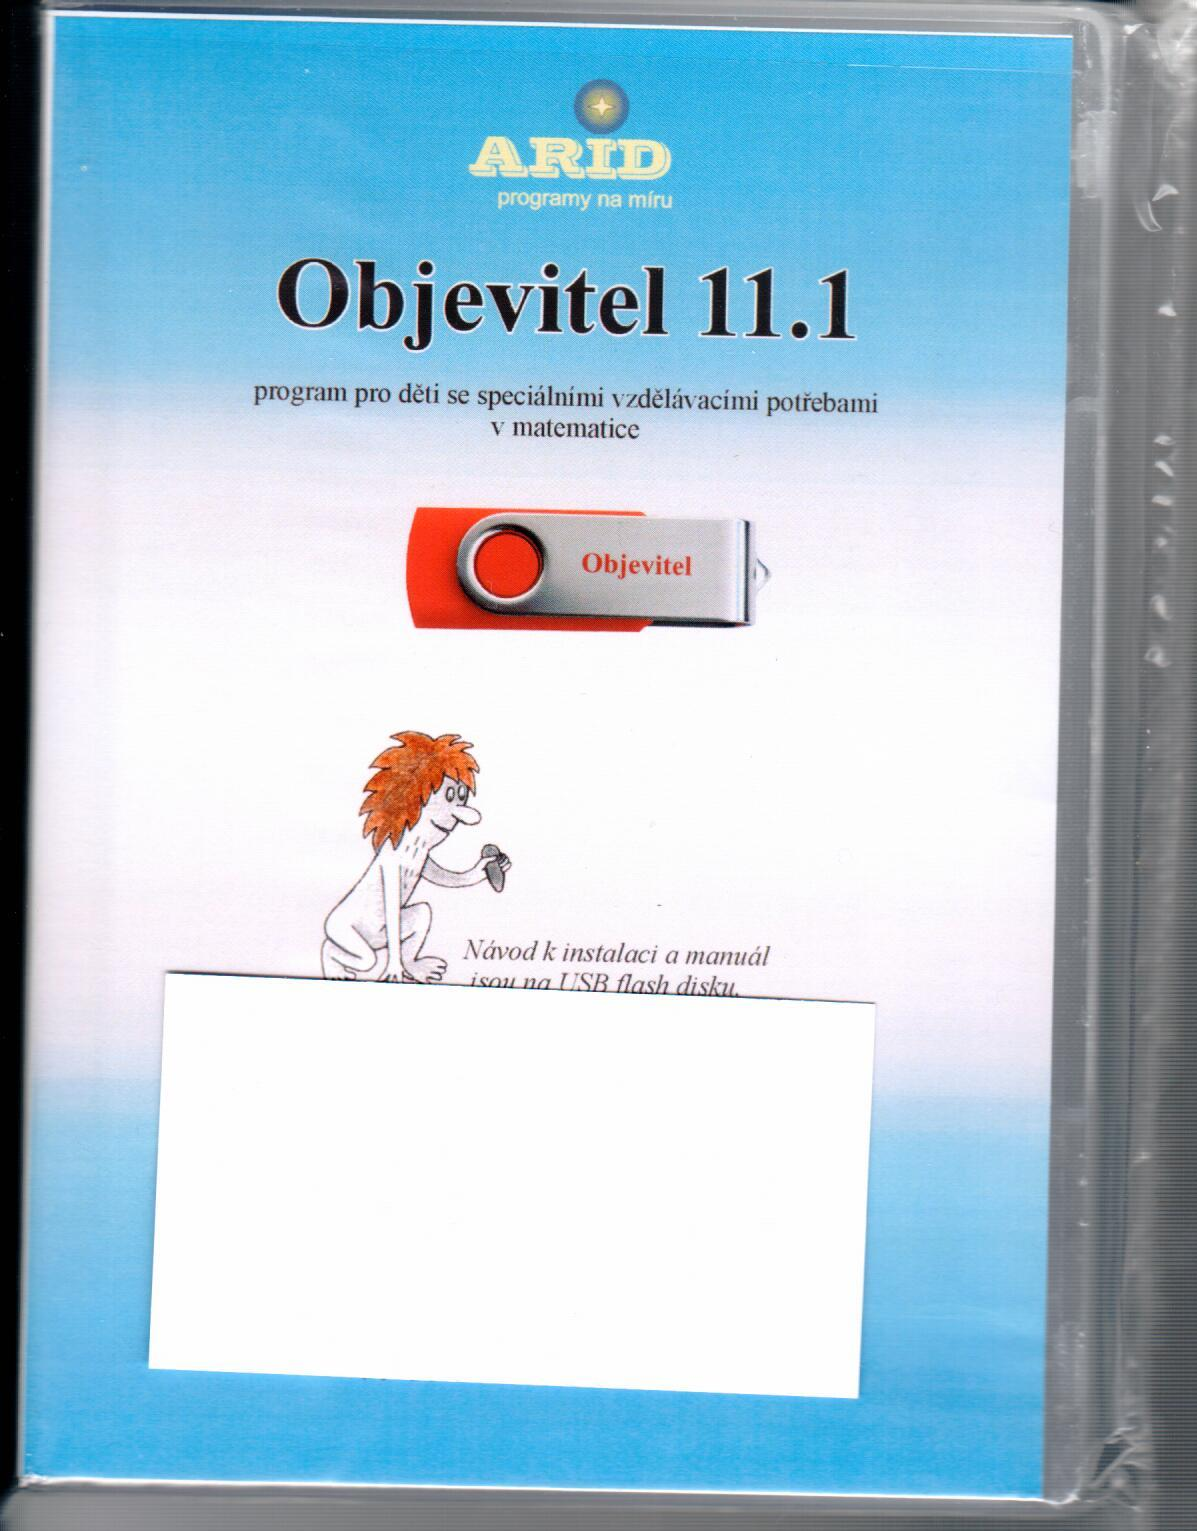 Objevitel - USB flash disk